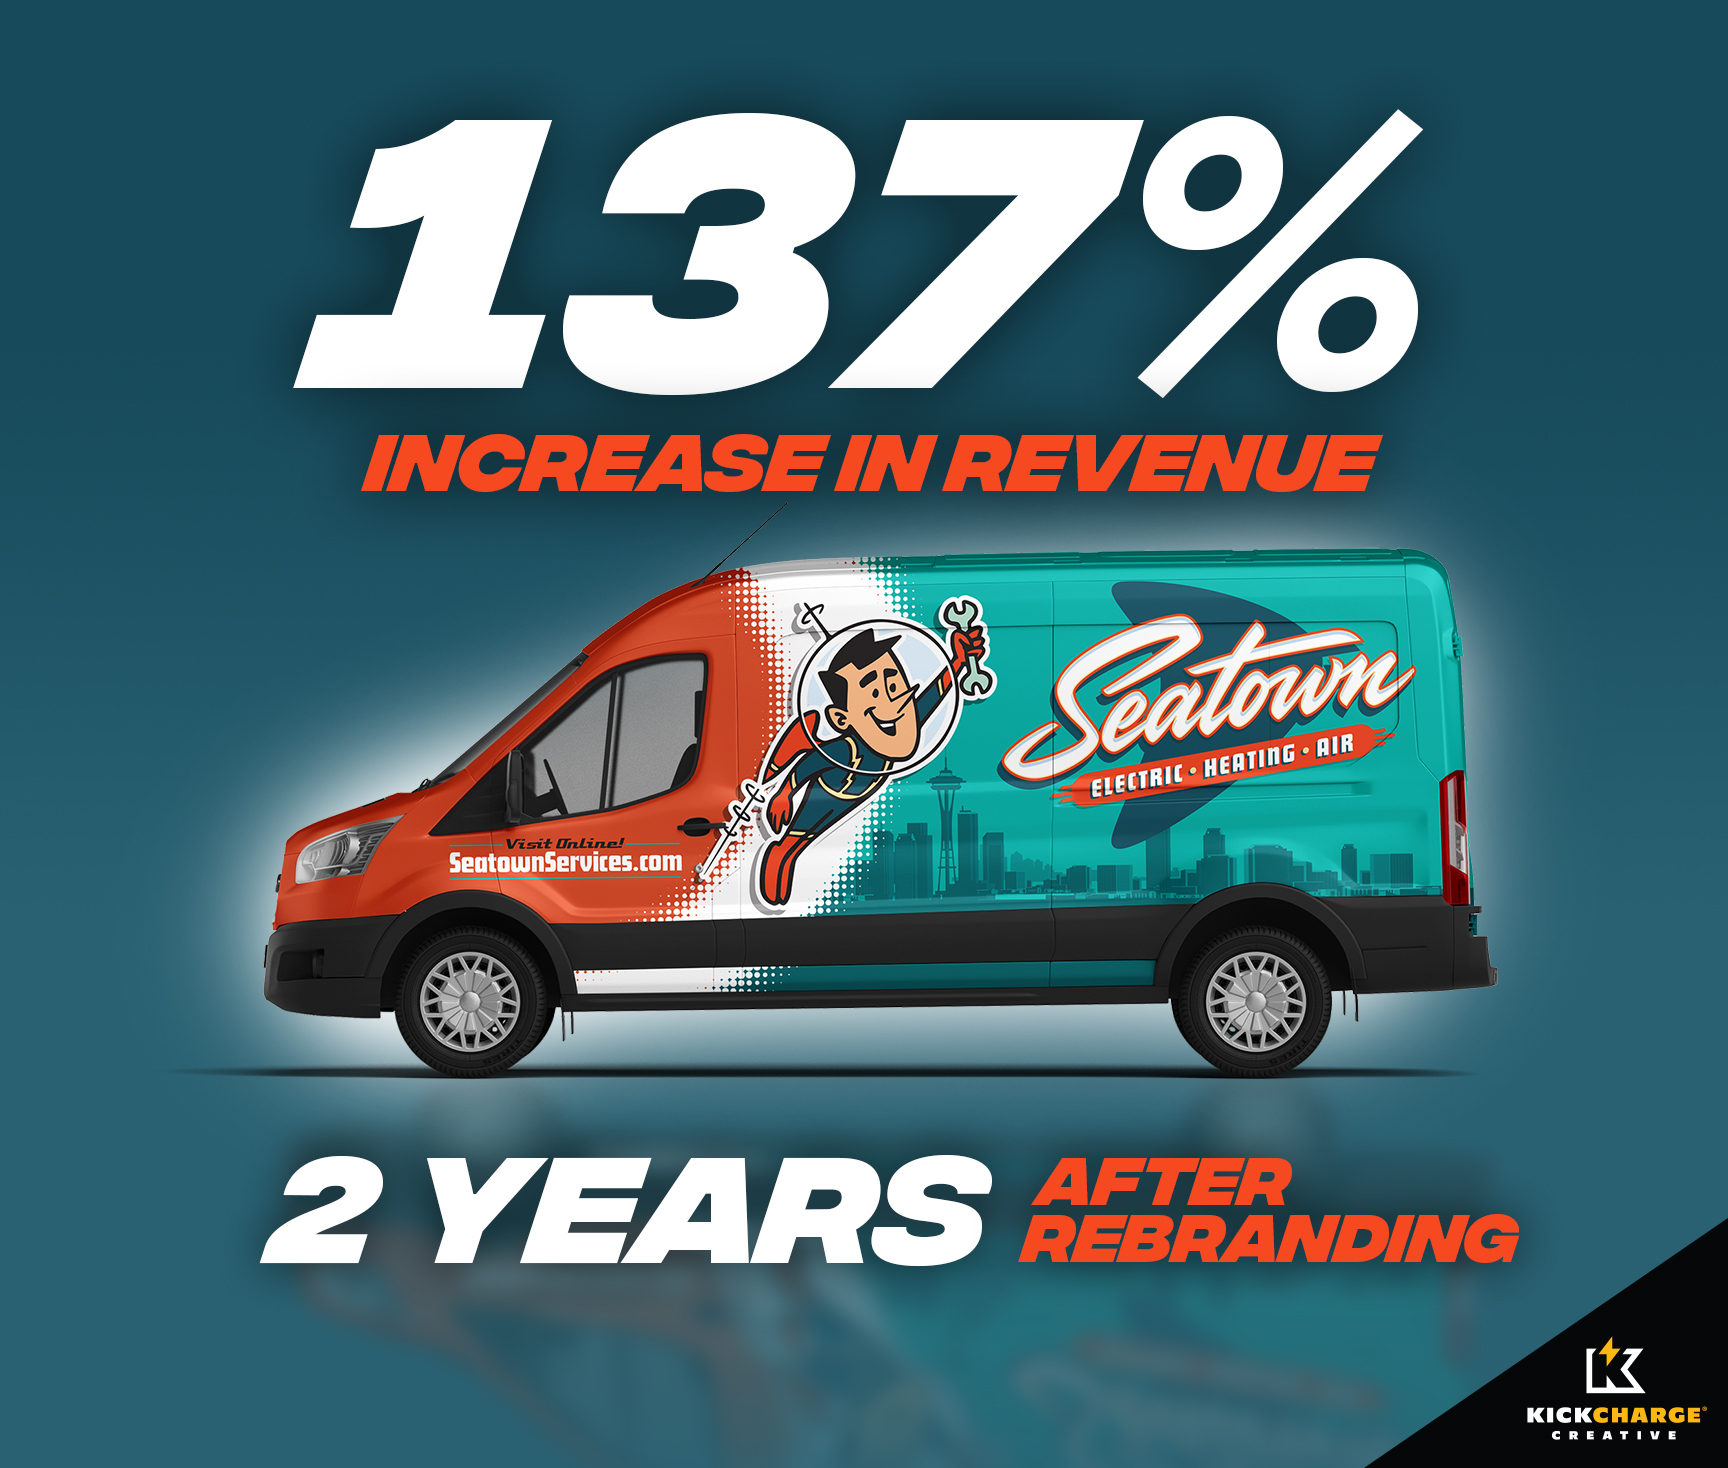 seatown revenue increase truck wrap